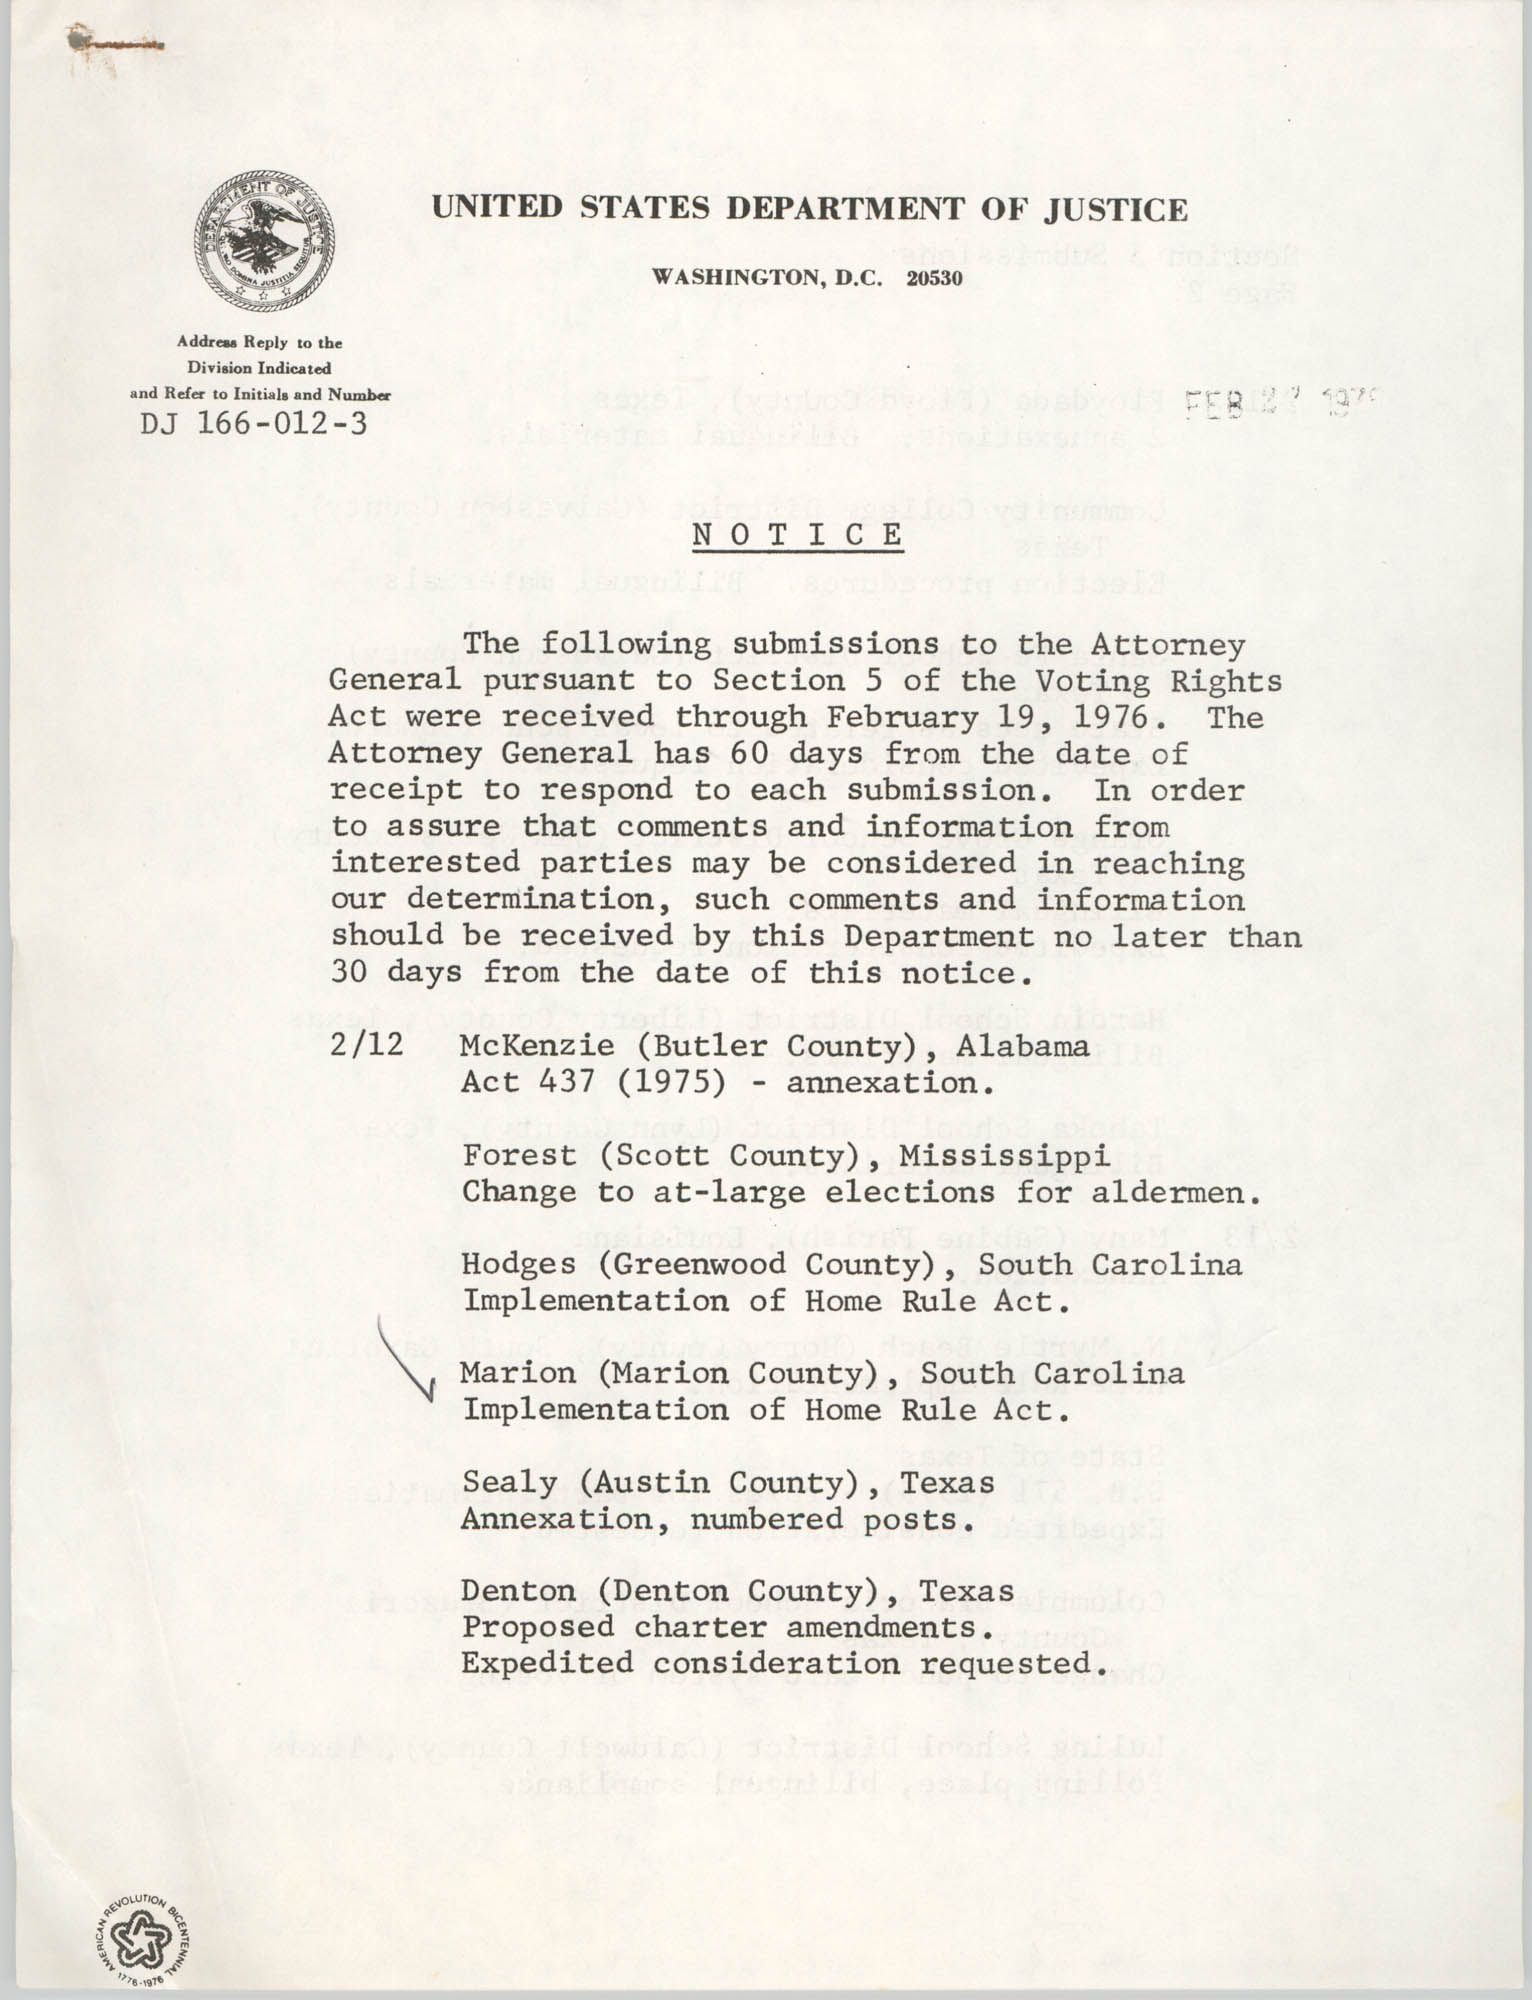 United States Department of Justice Notice, February 27, 1976, Page 1